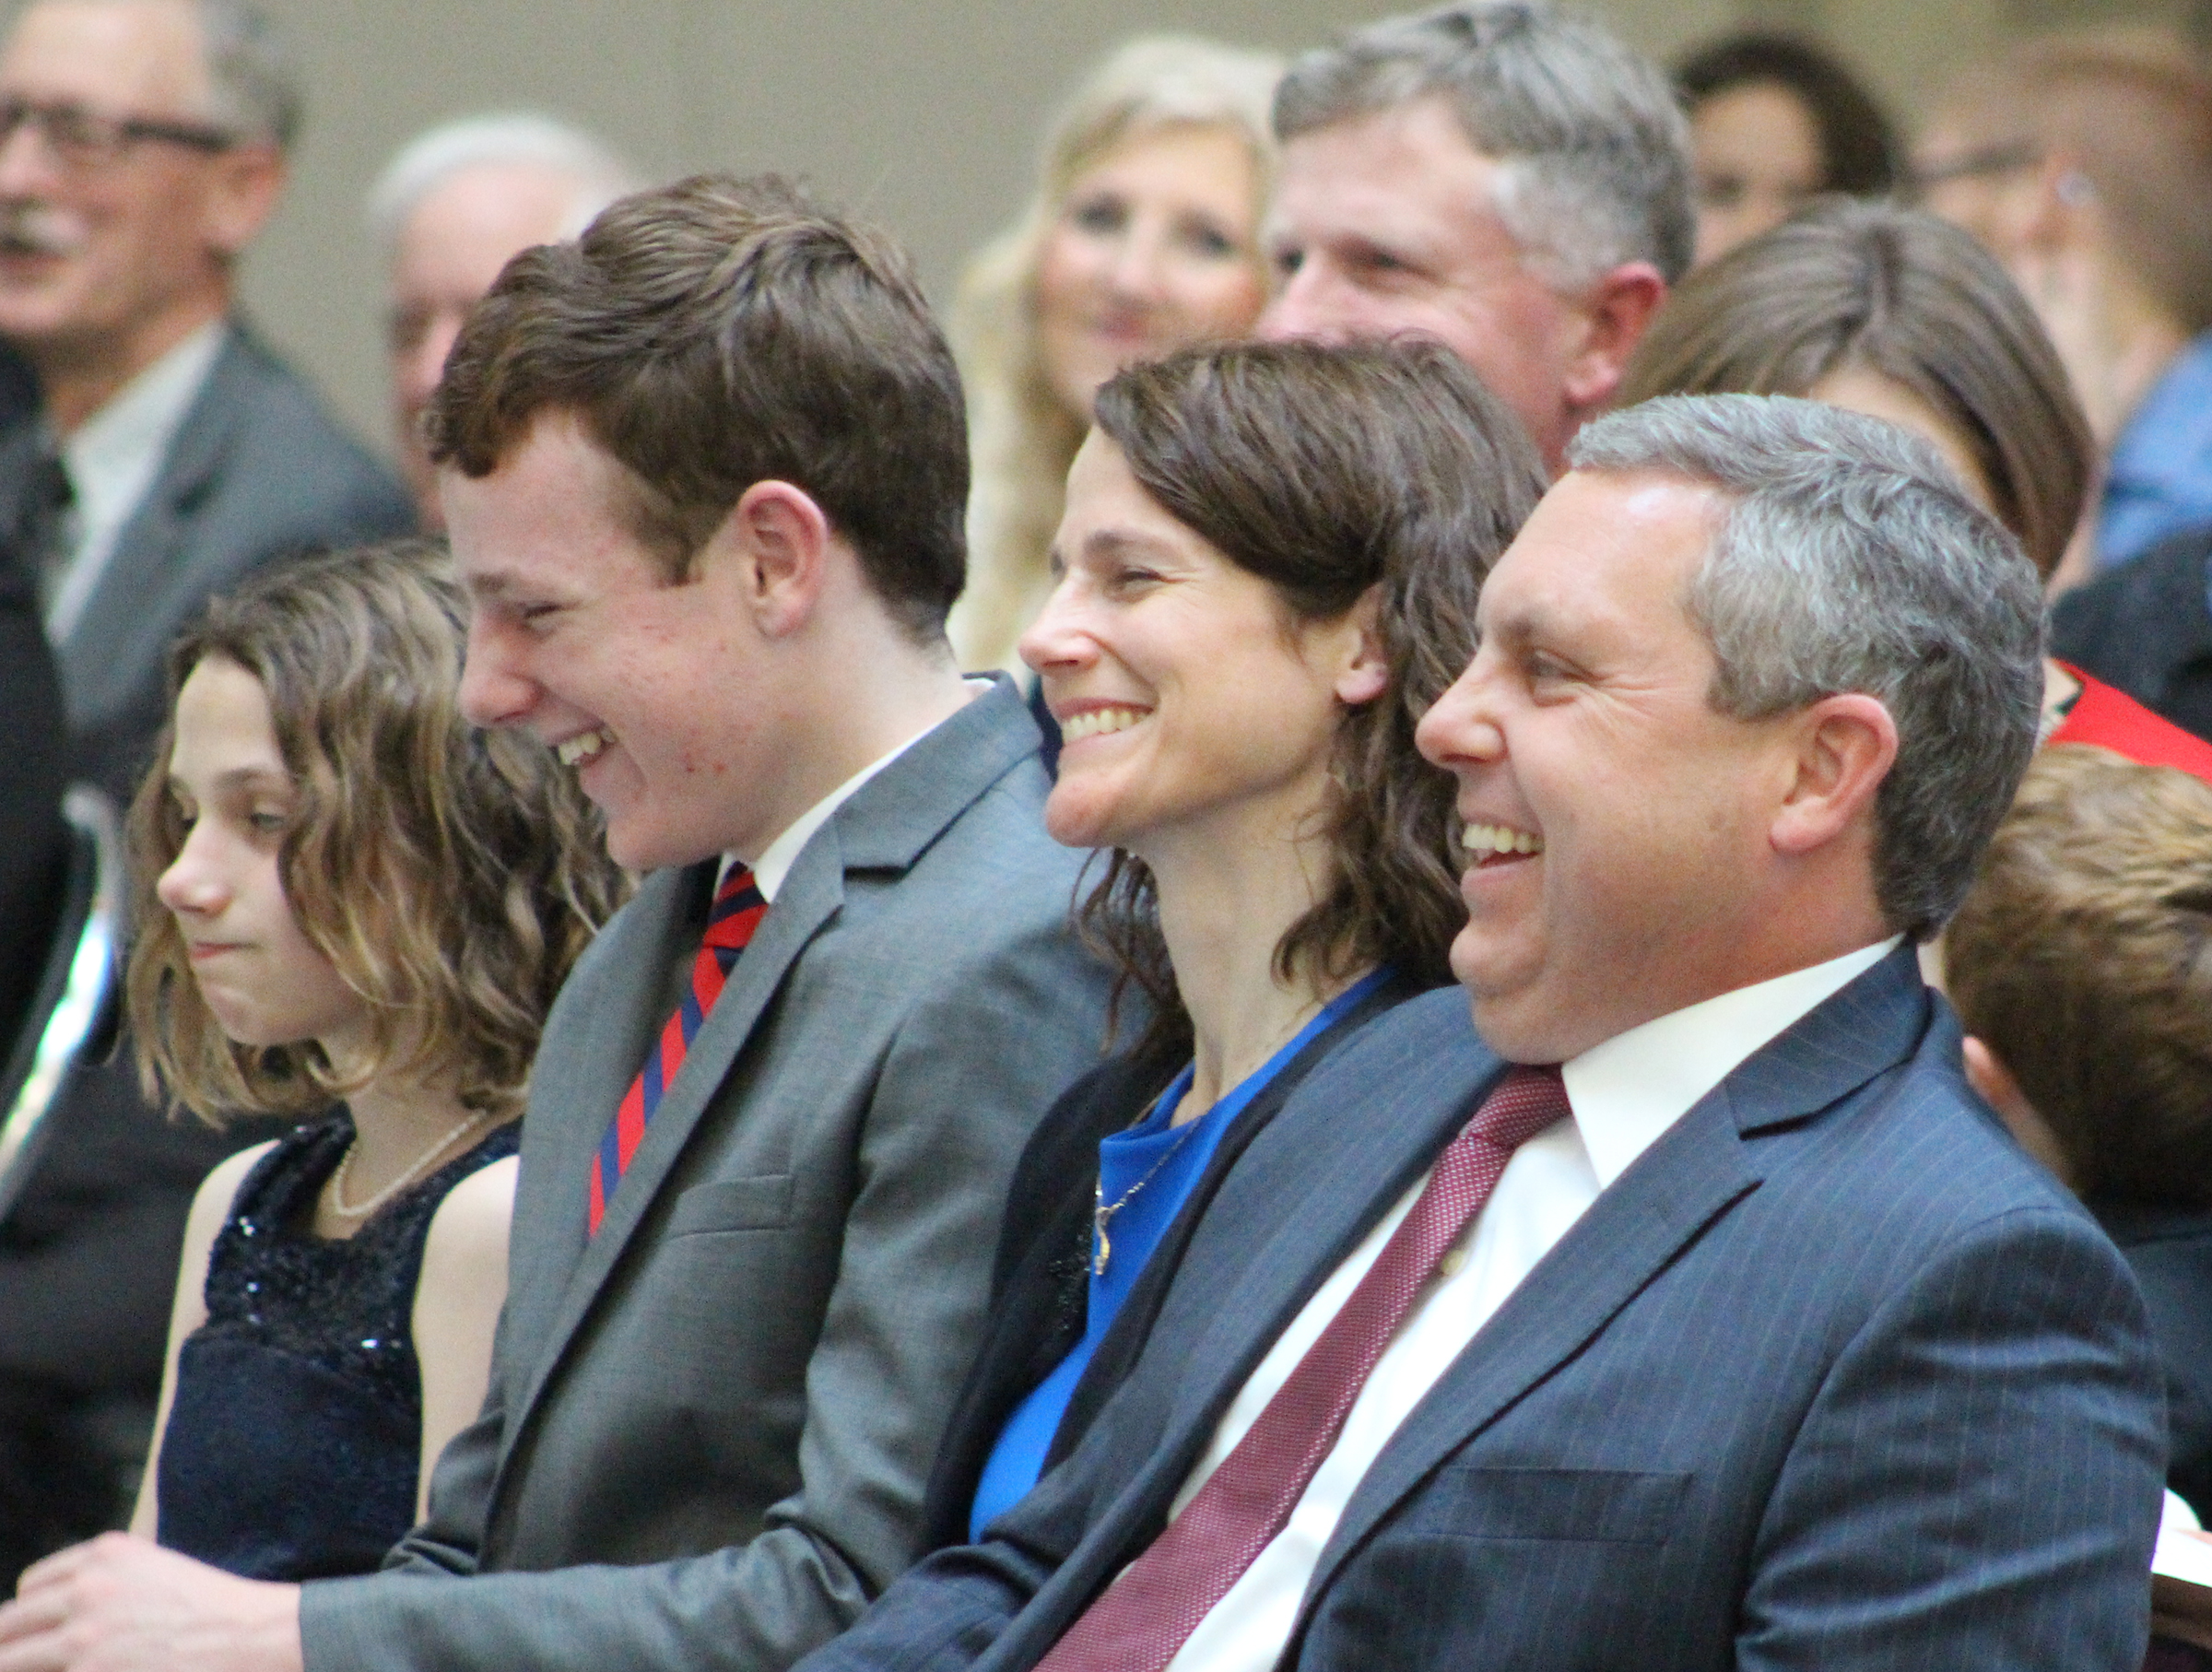 Brian C. Buescher laughs during U.S. Sen. Ben Sasse's remarks during his investiture ceremony at the Hruska Federal Courthouse on Friday, Nov. 15, 2019. (Photo by Scott Stewart)